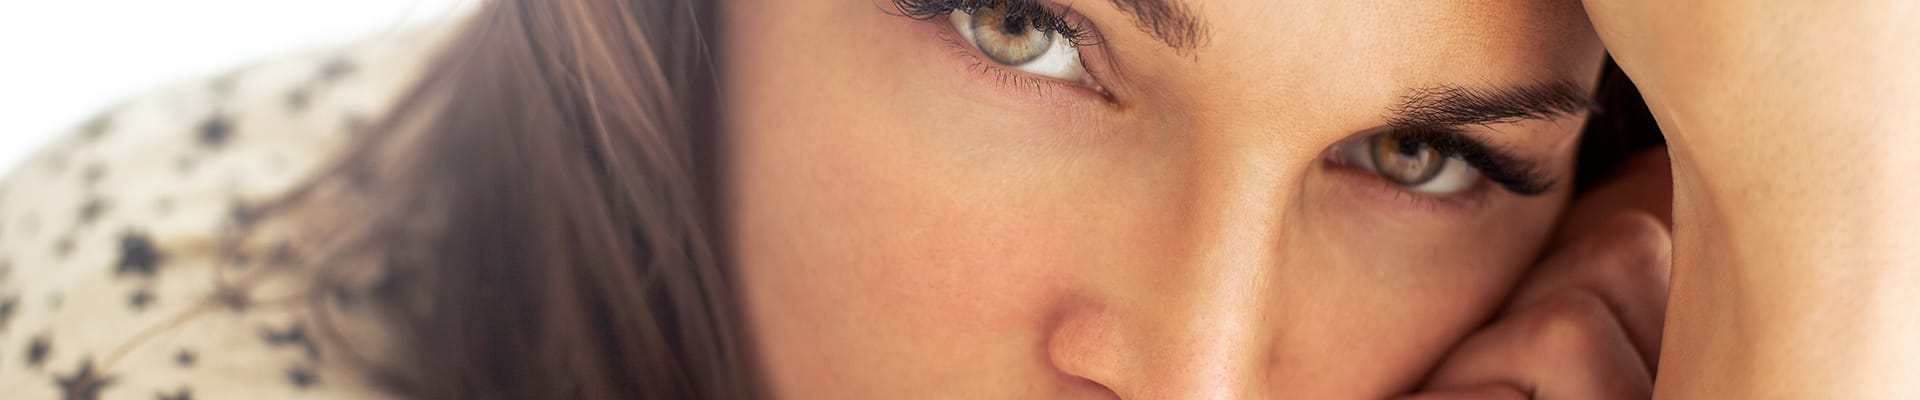 Saratoga Springs Non-Surgical Rhinoplasty